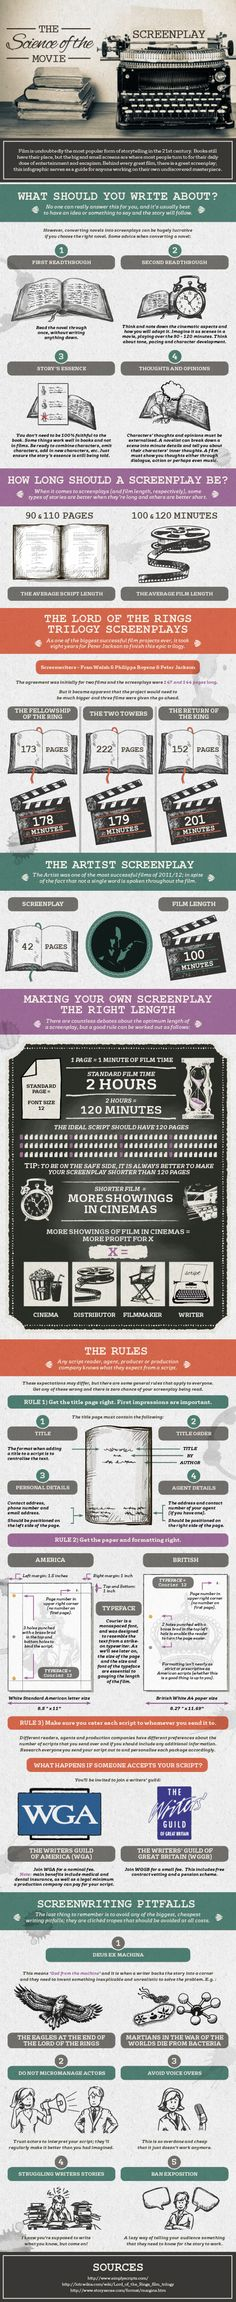 The Science of the Movie Screenplay  Infographic